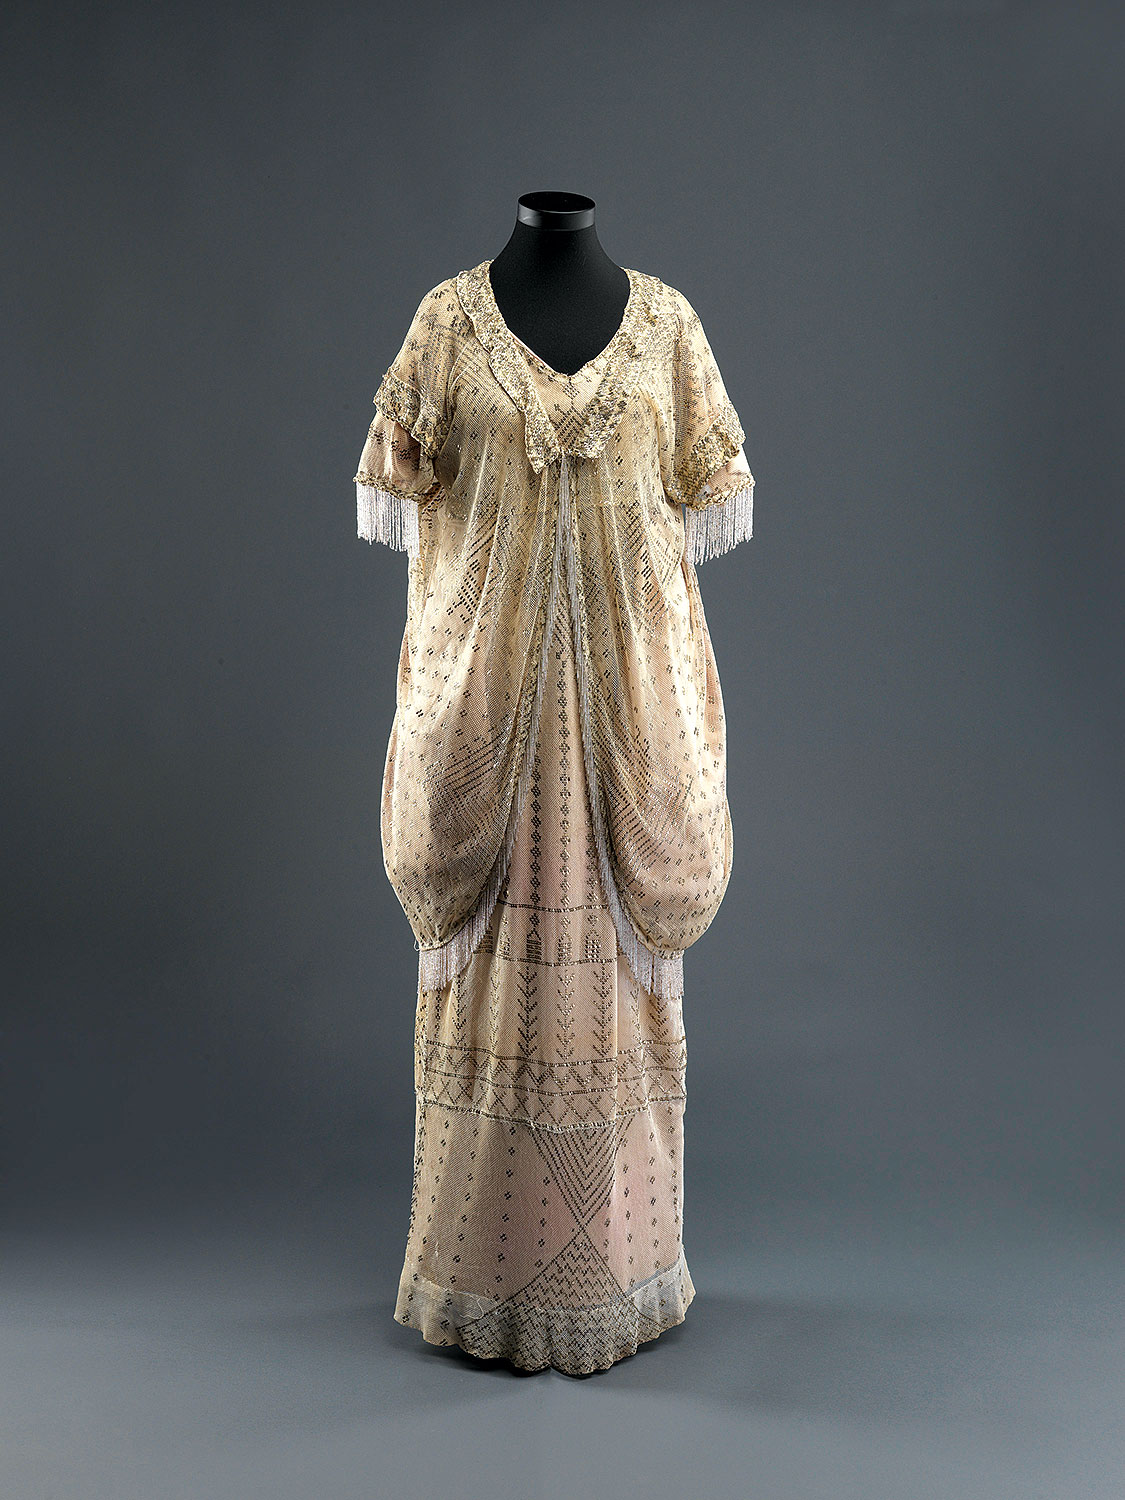 WOMAN'S ENSEMBLE of tulle and silver-tinsel embroidery, probably Alexandria, Egypt, 1920s.  Photograph by Elie Posner, courtesy of The Israel Museum, Jerusalem.